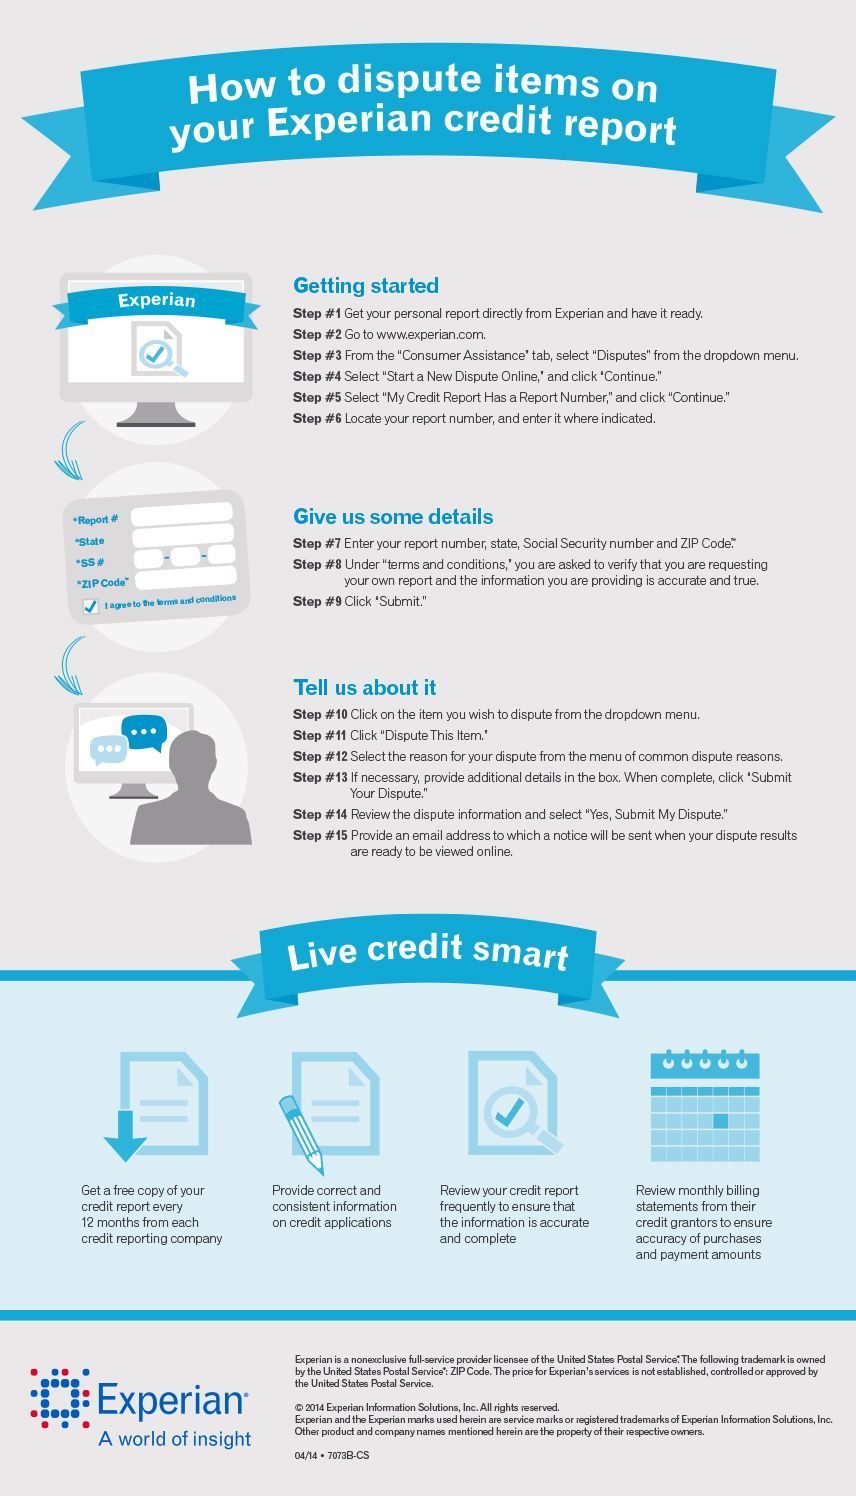 How to dispute items on your experian credit report infographic